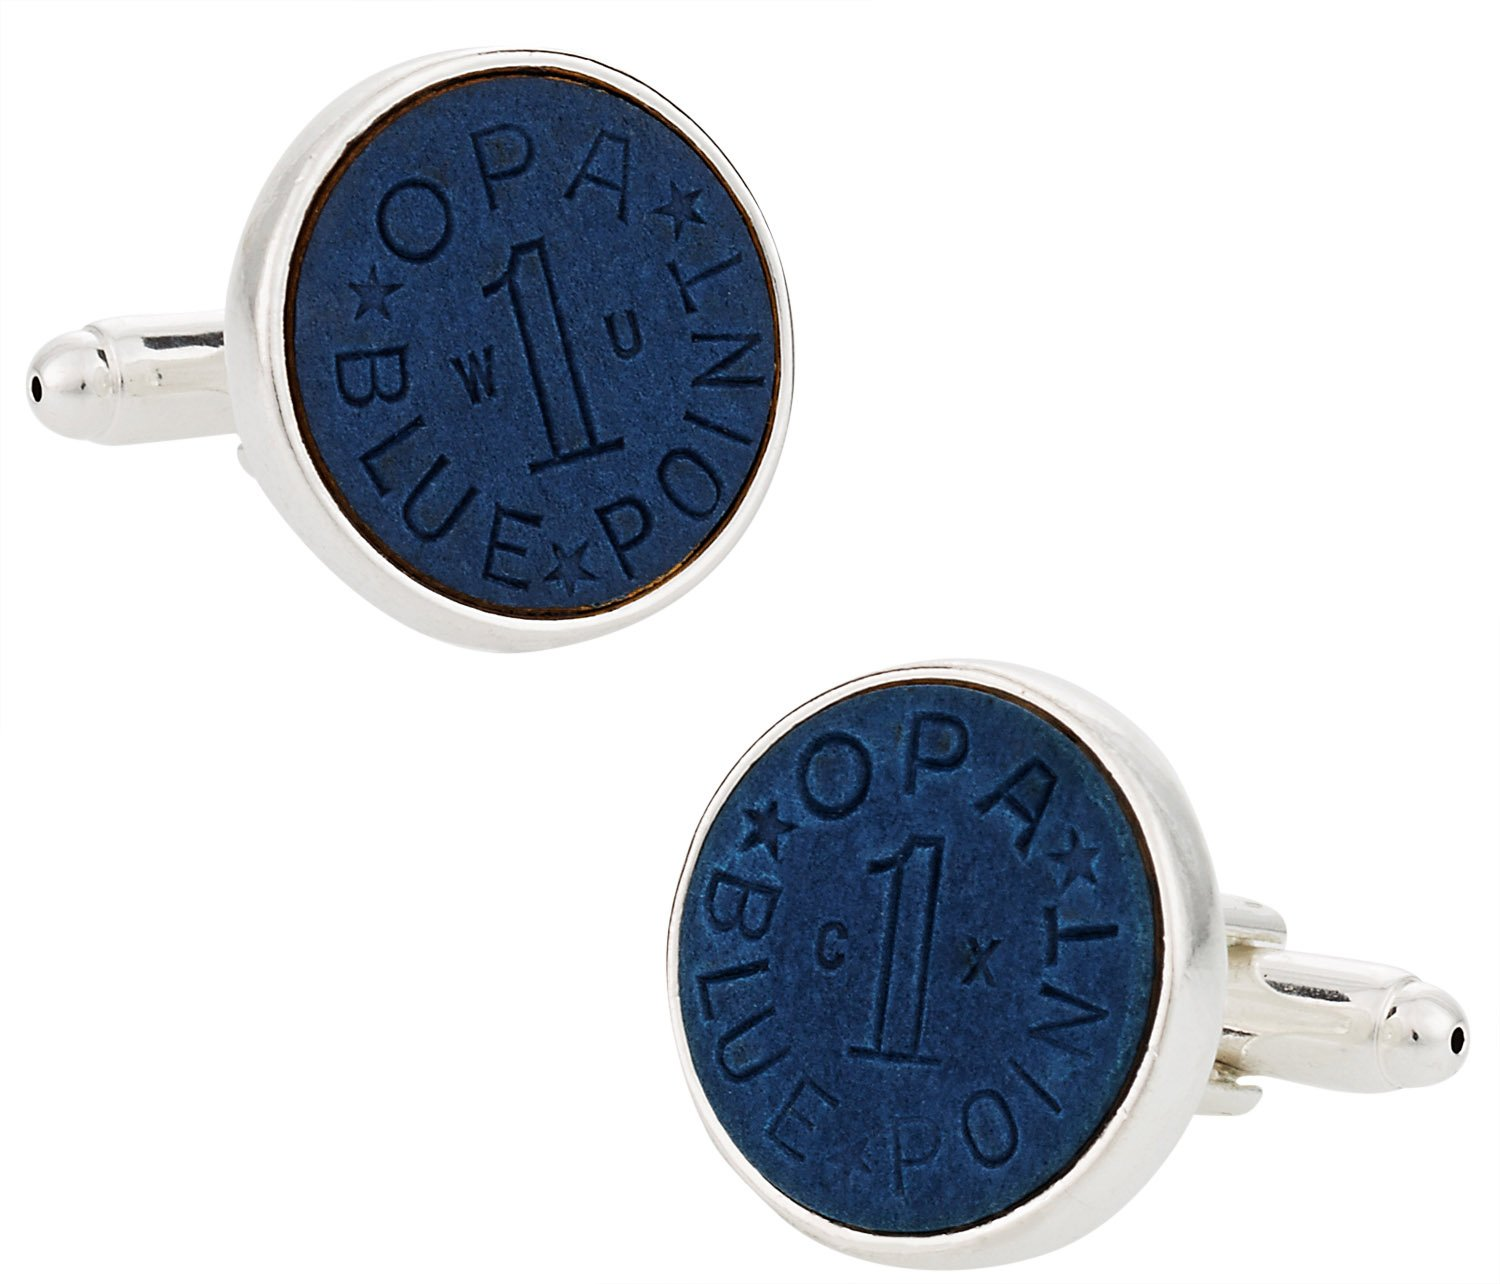 Cuff-Daddy OPA Blue Point WWII Ration Cufflinks Plated with Sterling Silver with Presentation Box